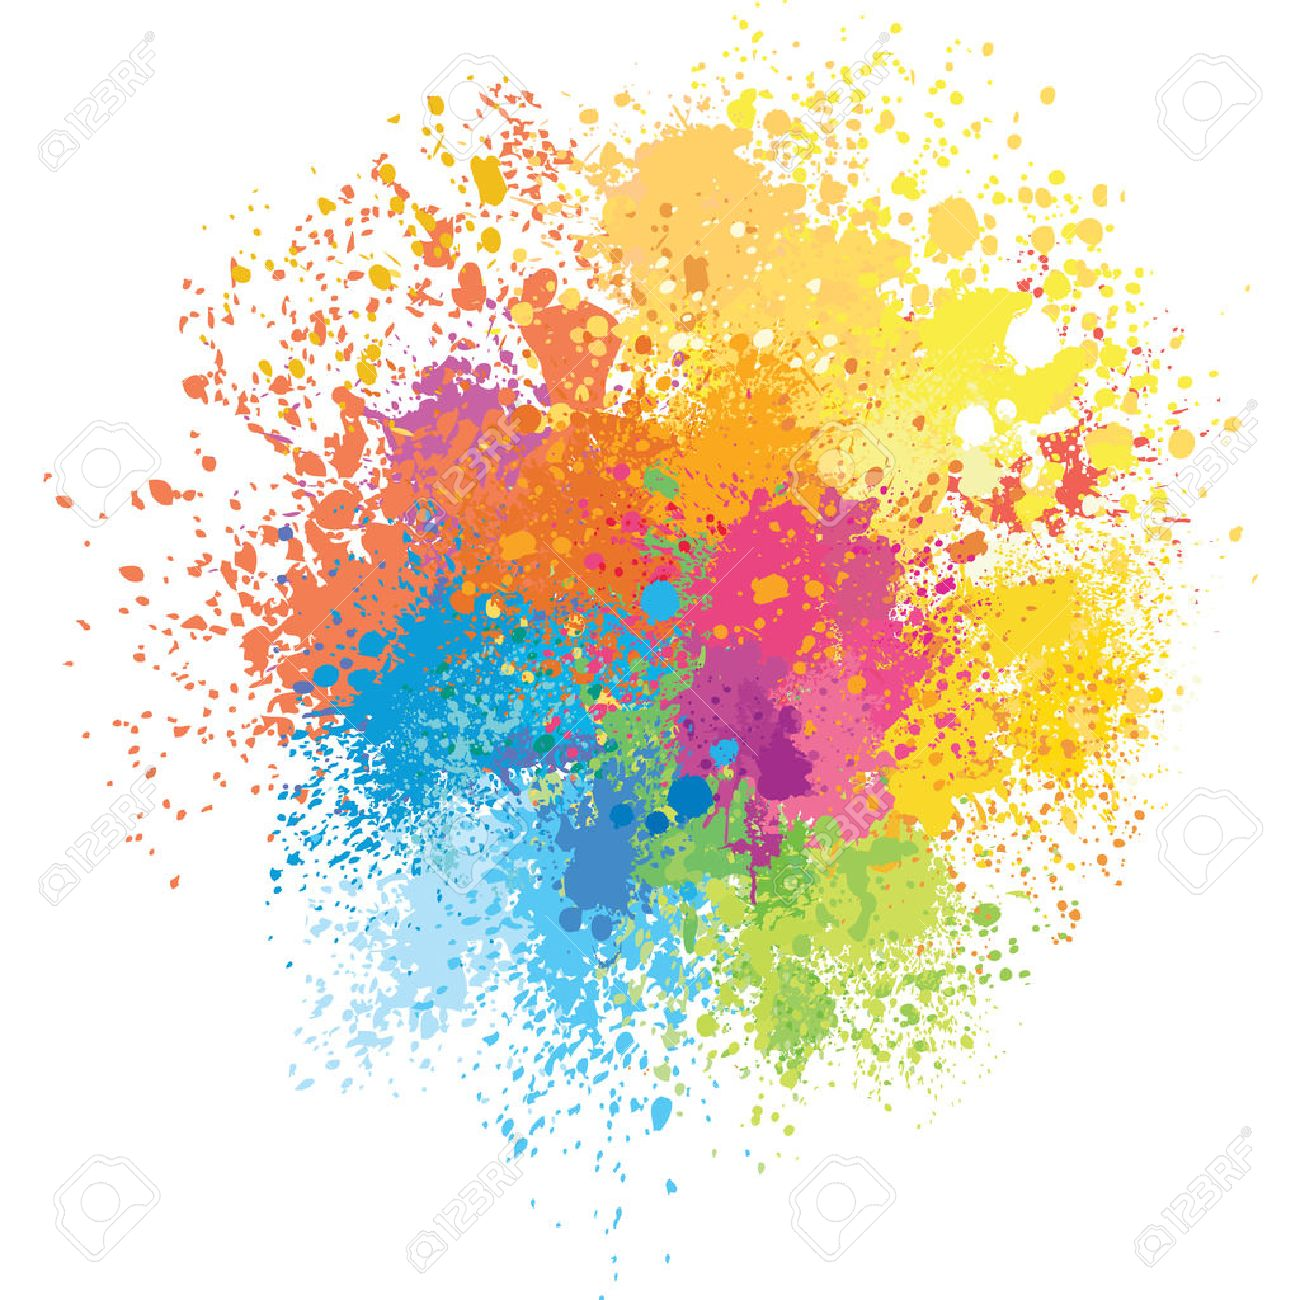 Color background of paint splashes - 52177490